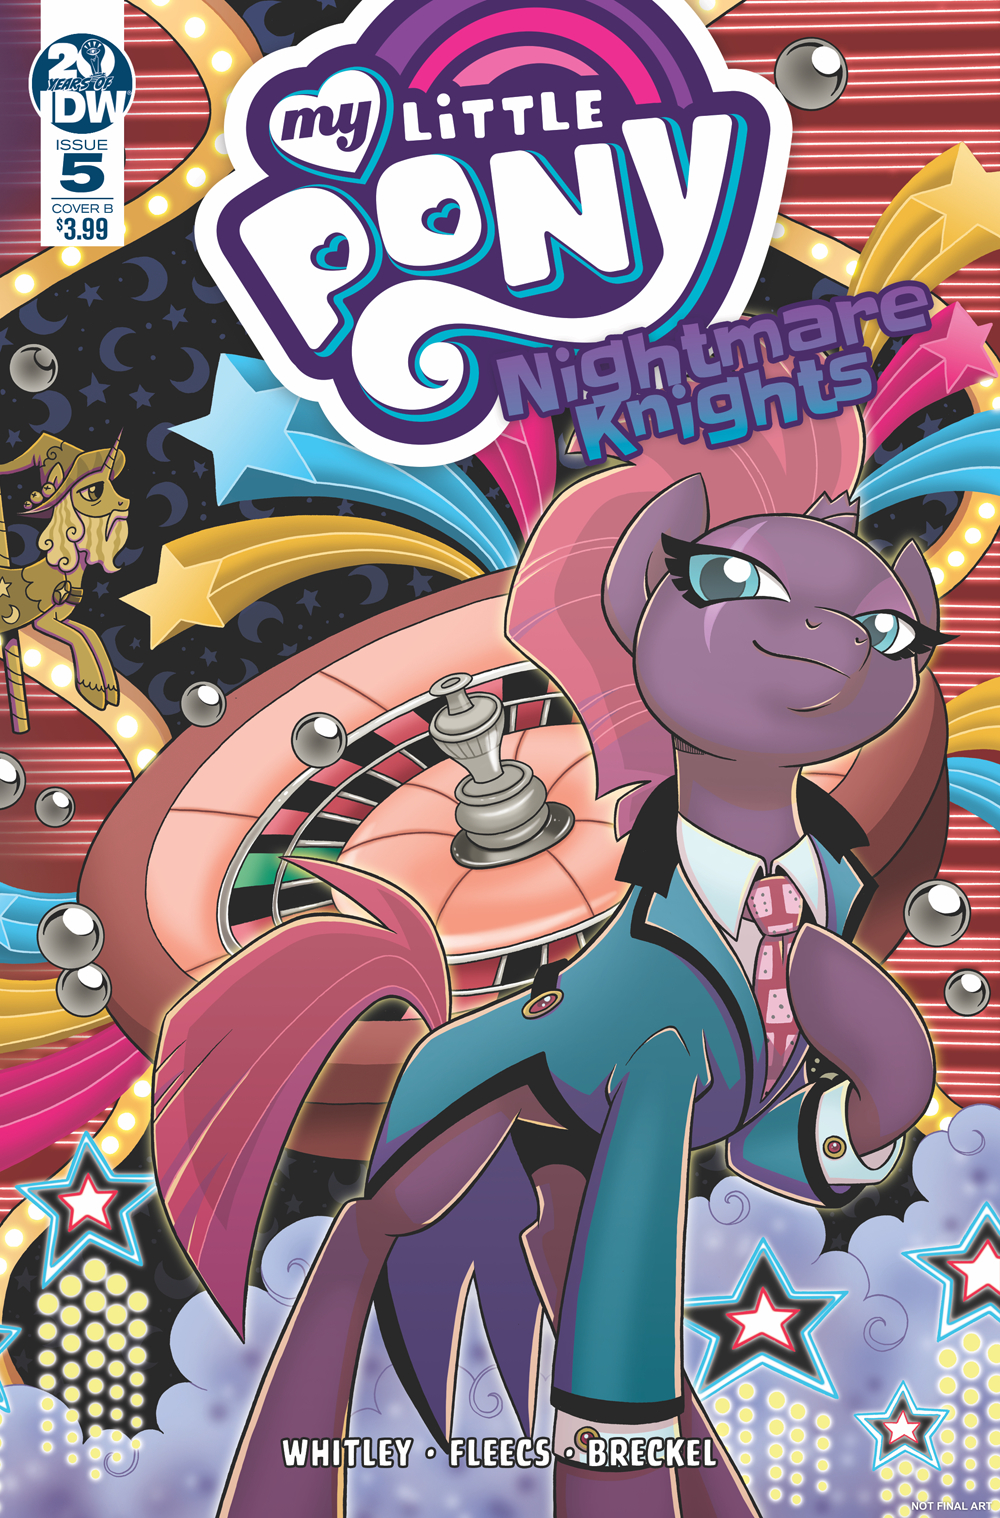 MY LITTLE PONY NIGHTMARE KNIGHTS #5 CVR B HICKEY